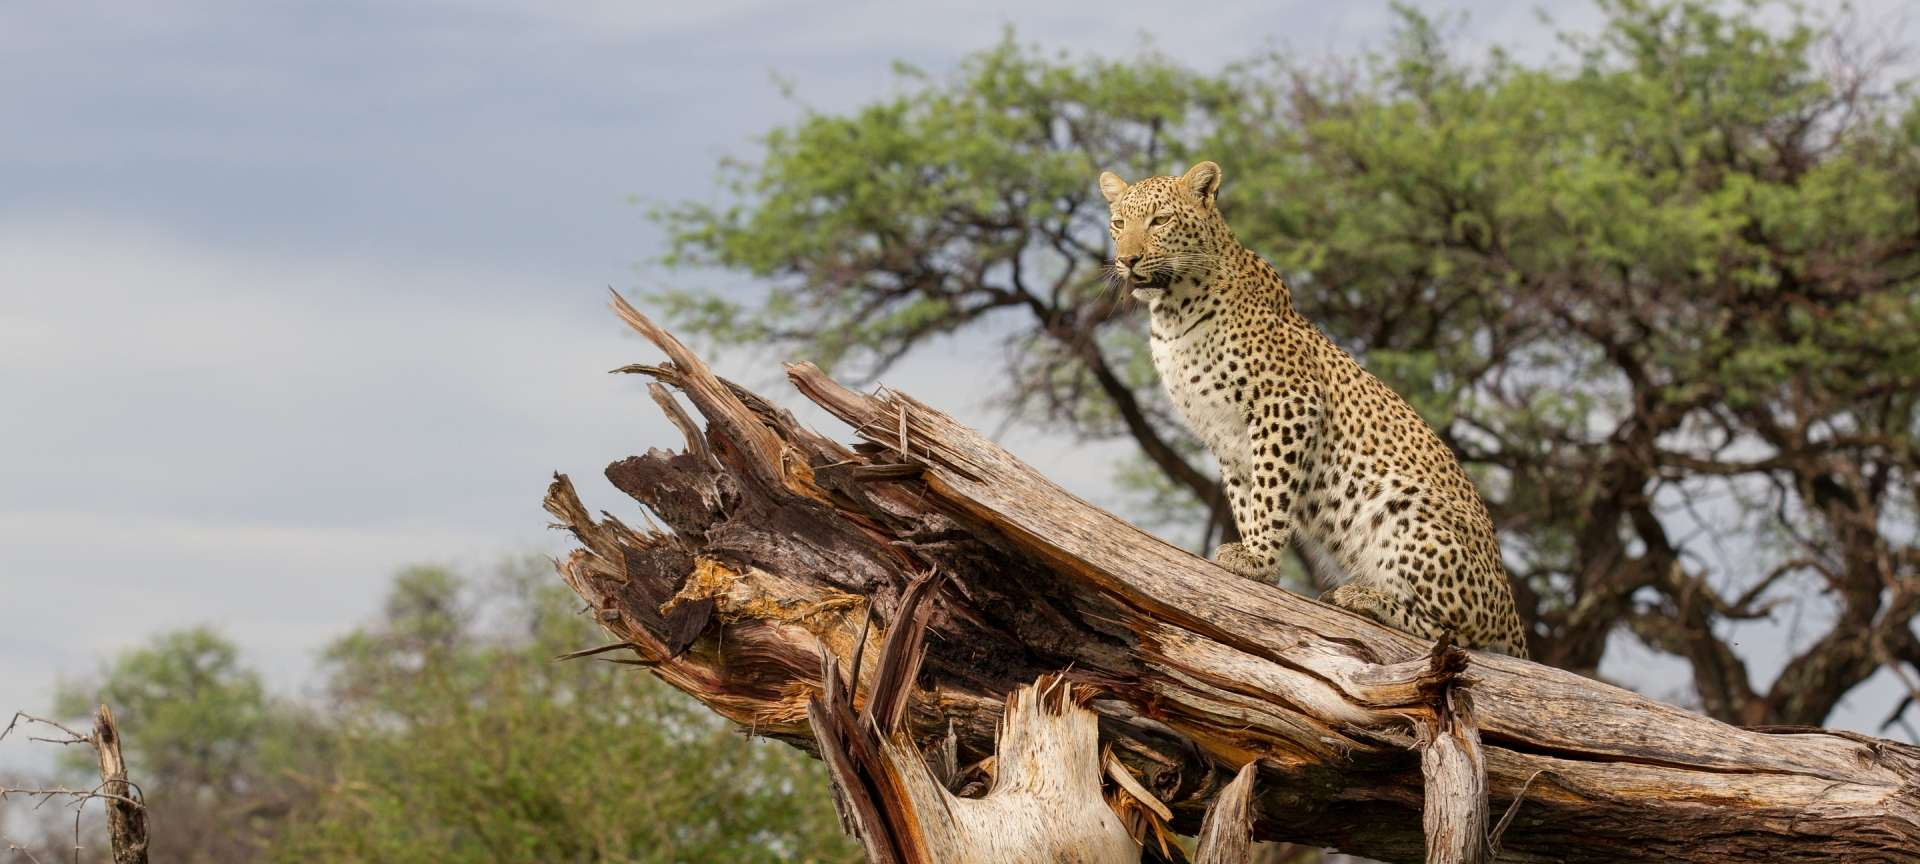 Leopard are elusive and not easily sighted